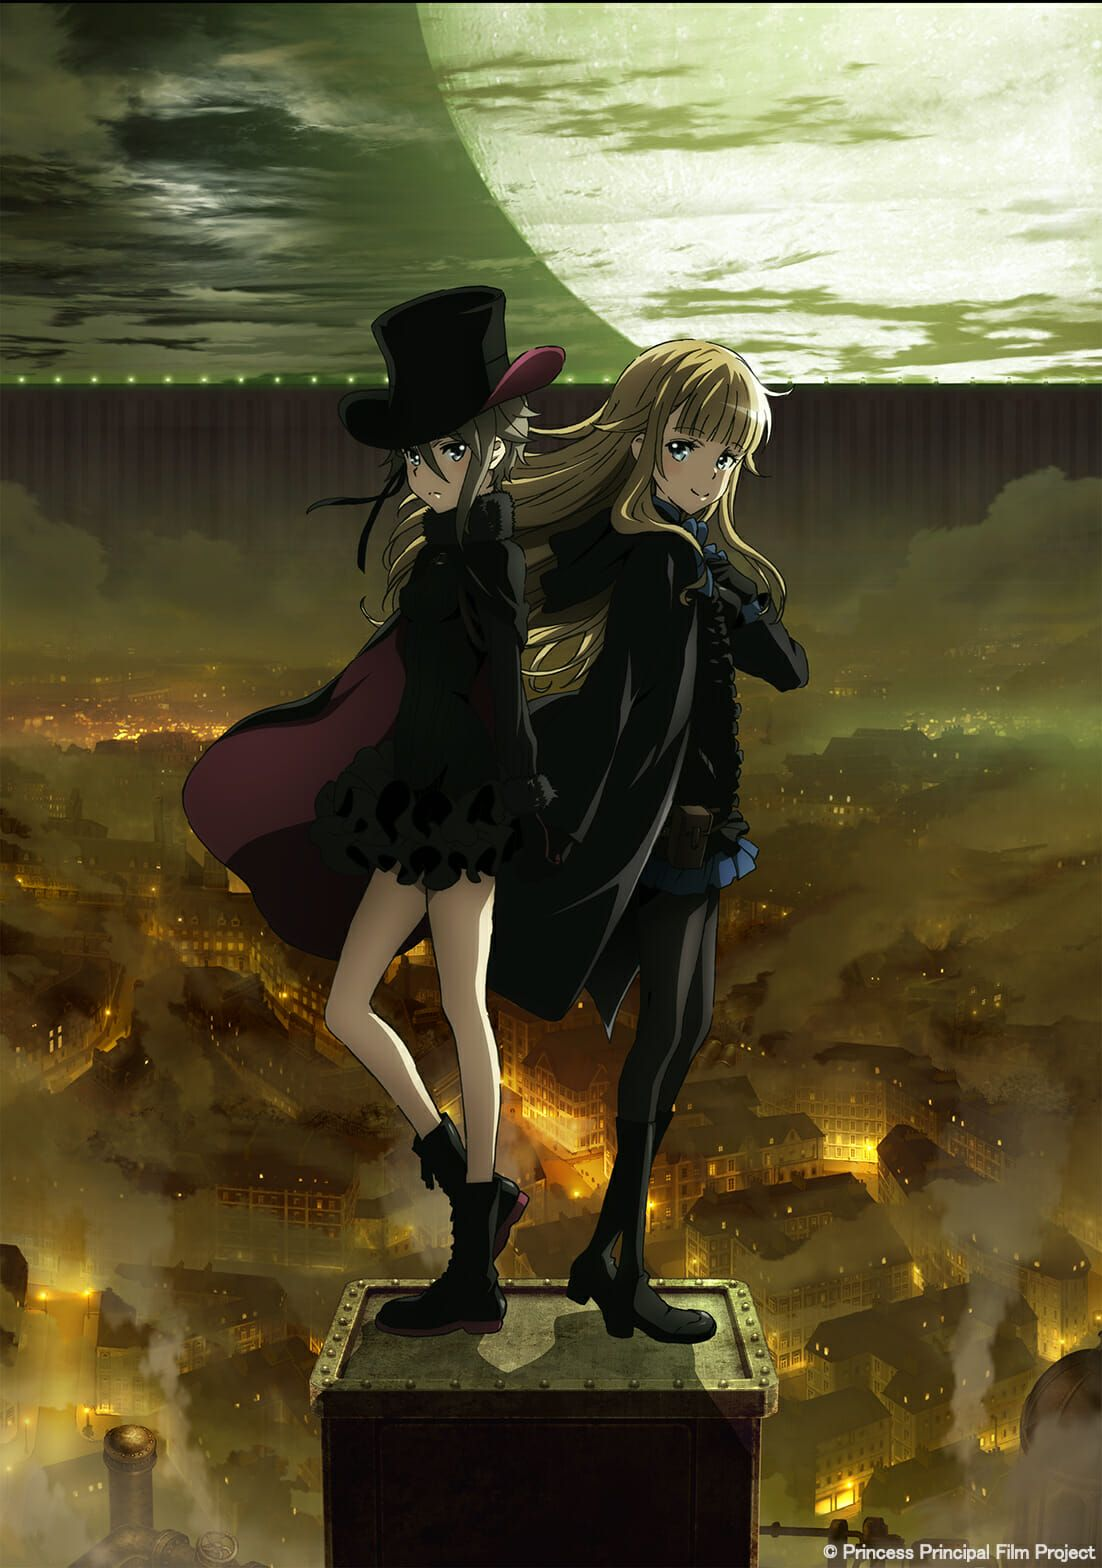 Princess Principal Crown Handler Film Gets New Trailer